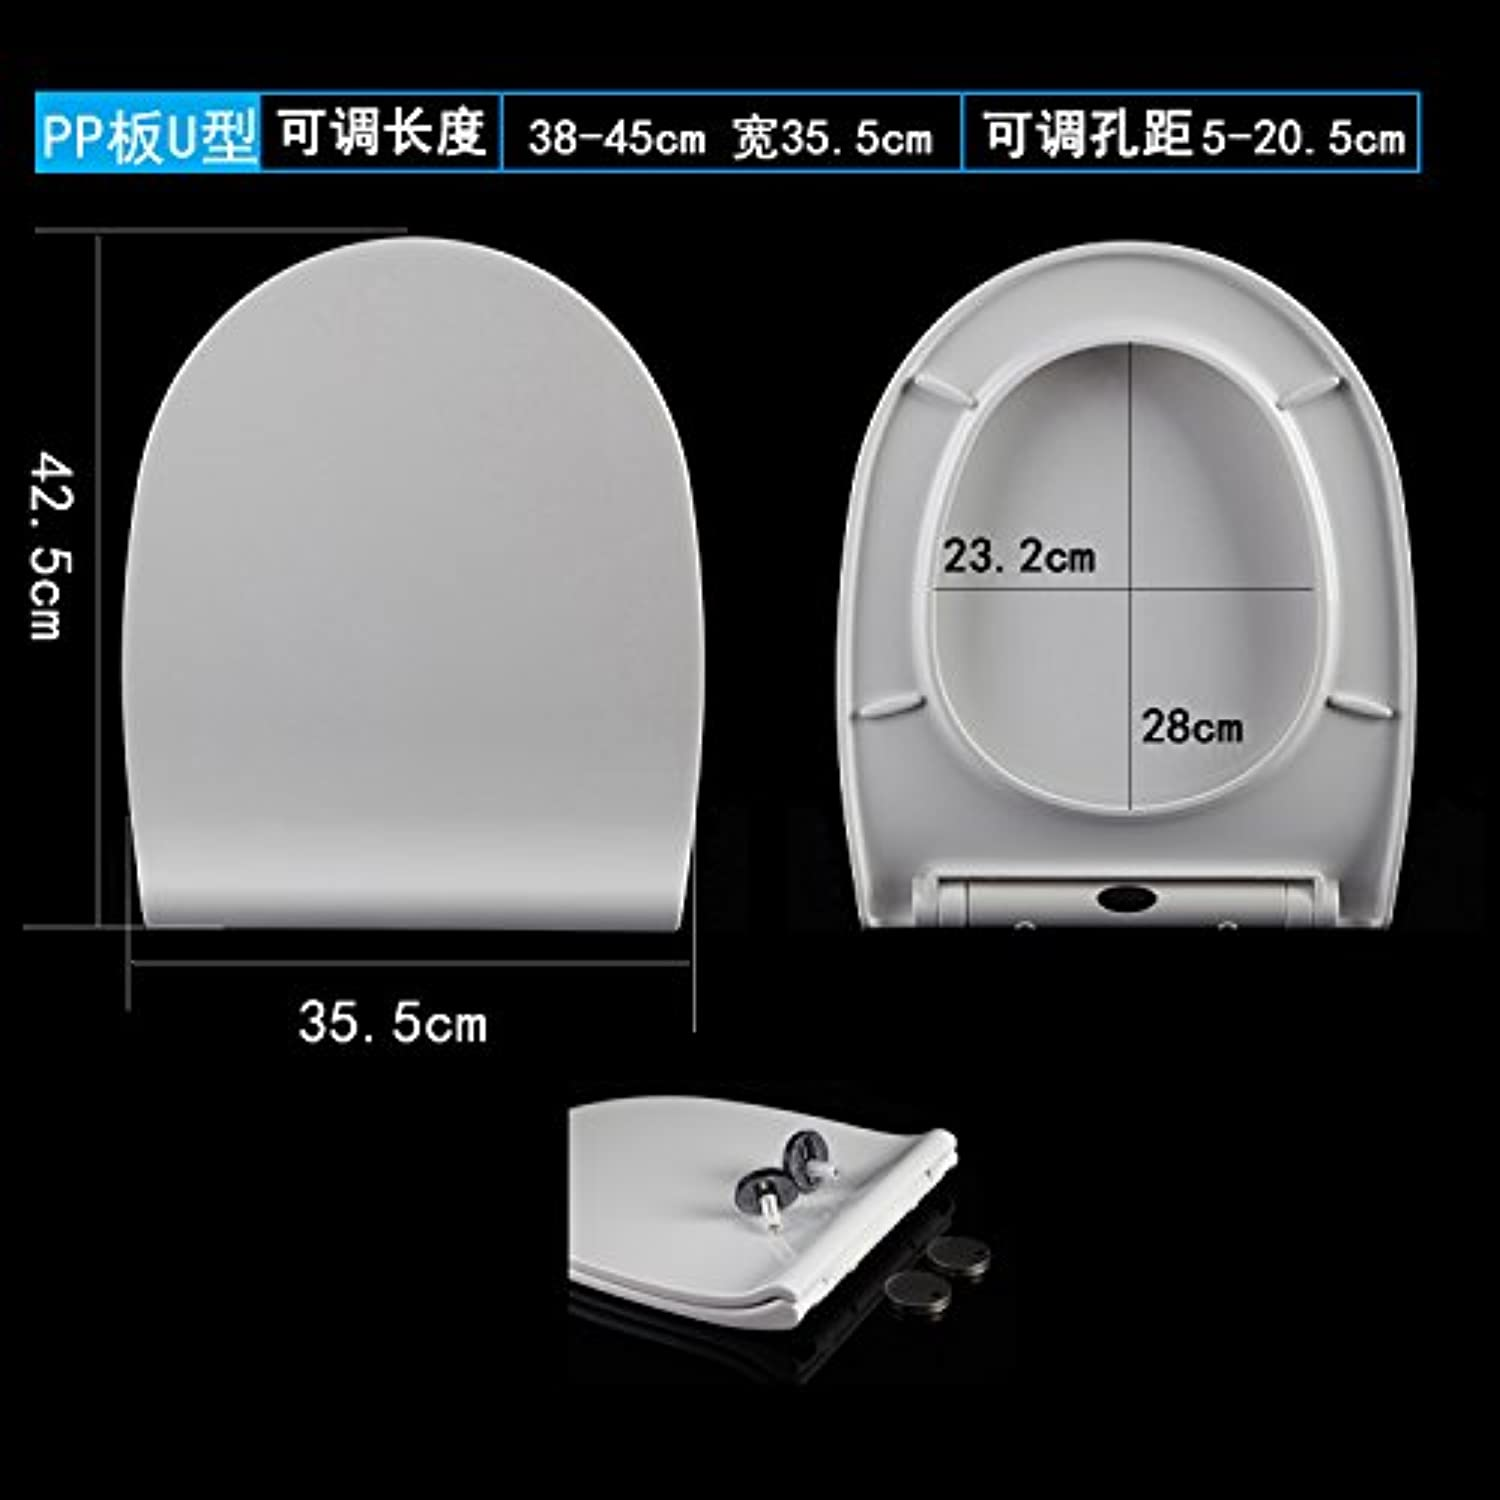 Topseh One Key Quick Dismantle Urea Formaldehyde Toilet Cover and Slow Down Old Type Thickening Seat Cover Gen